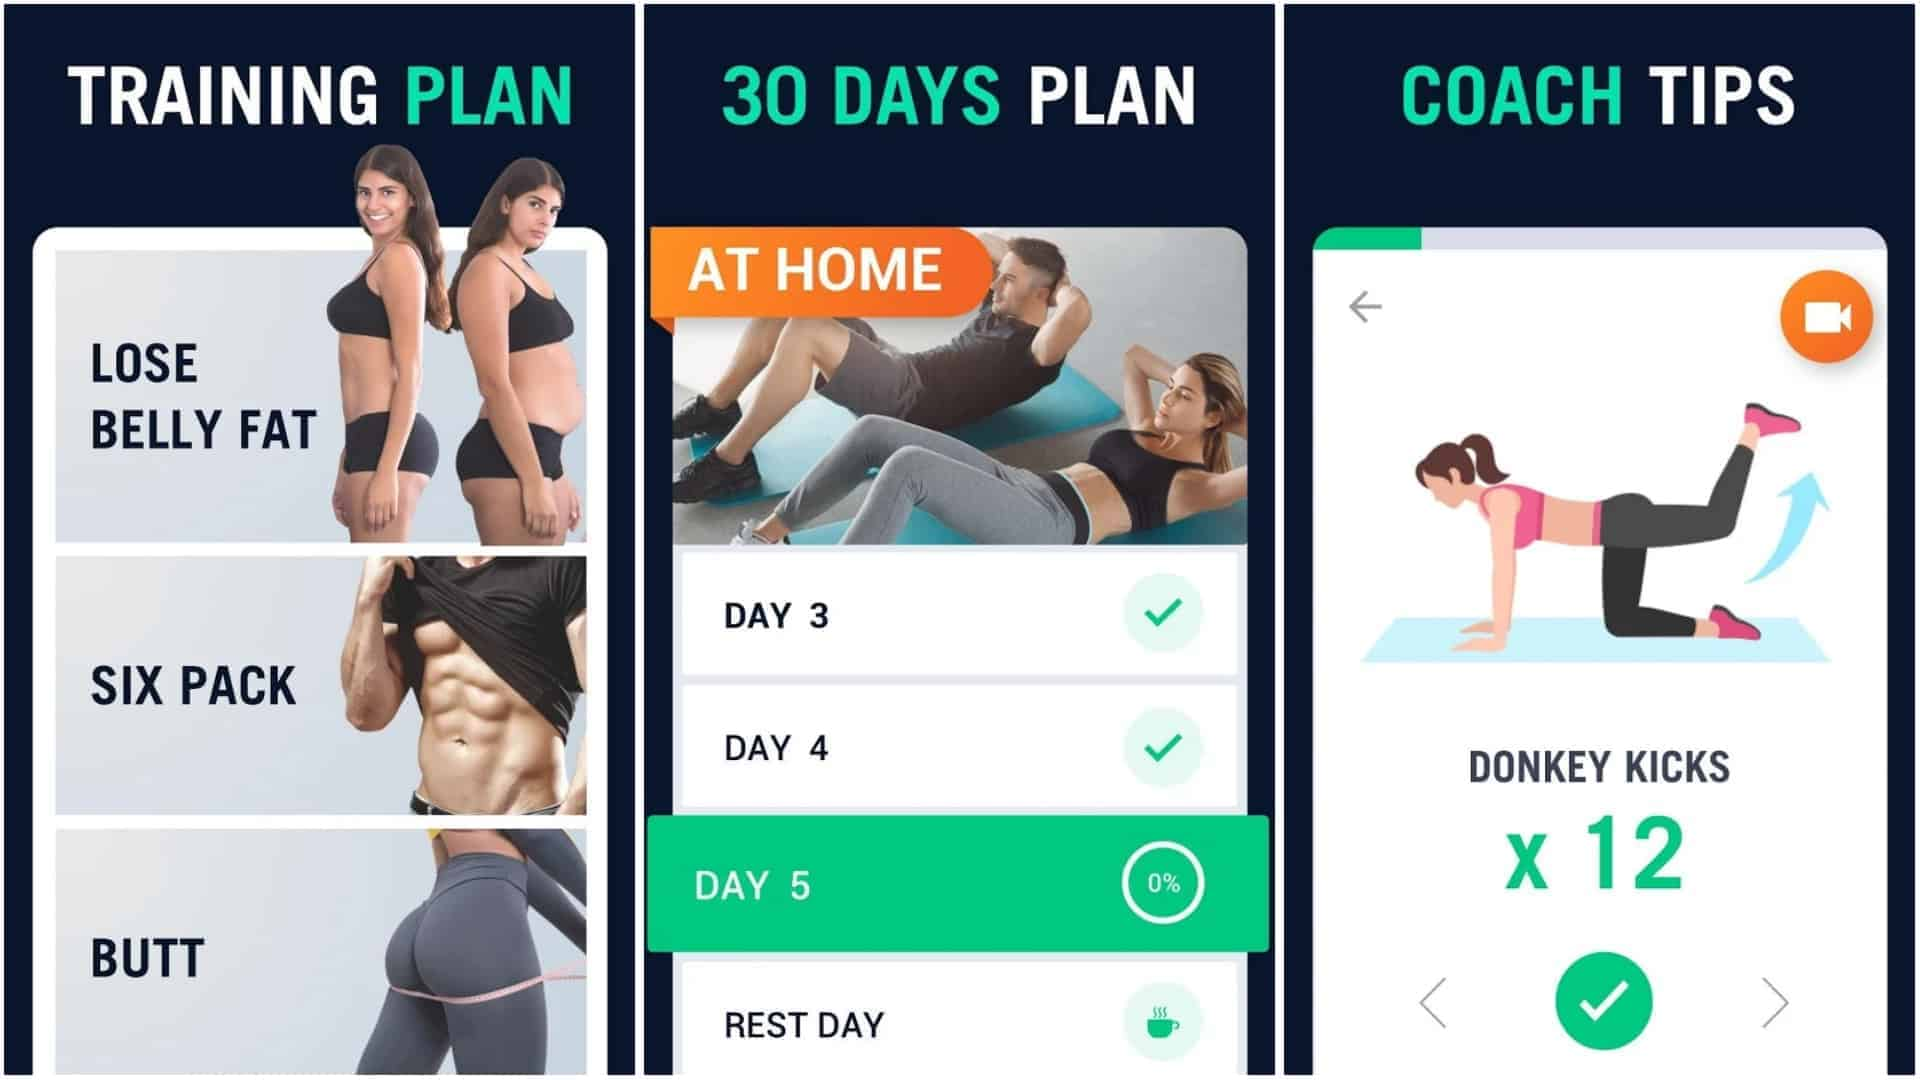 30 Day Fitness Challenge Workout at Home app image January 2020